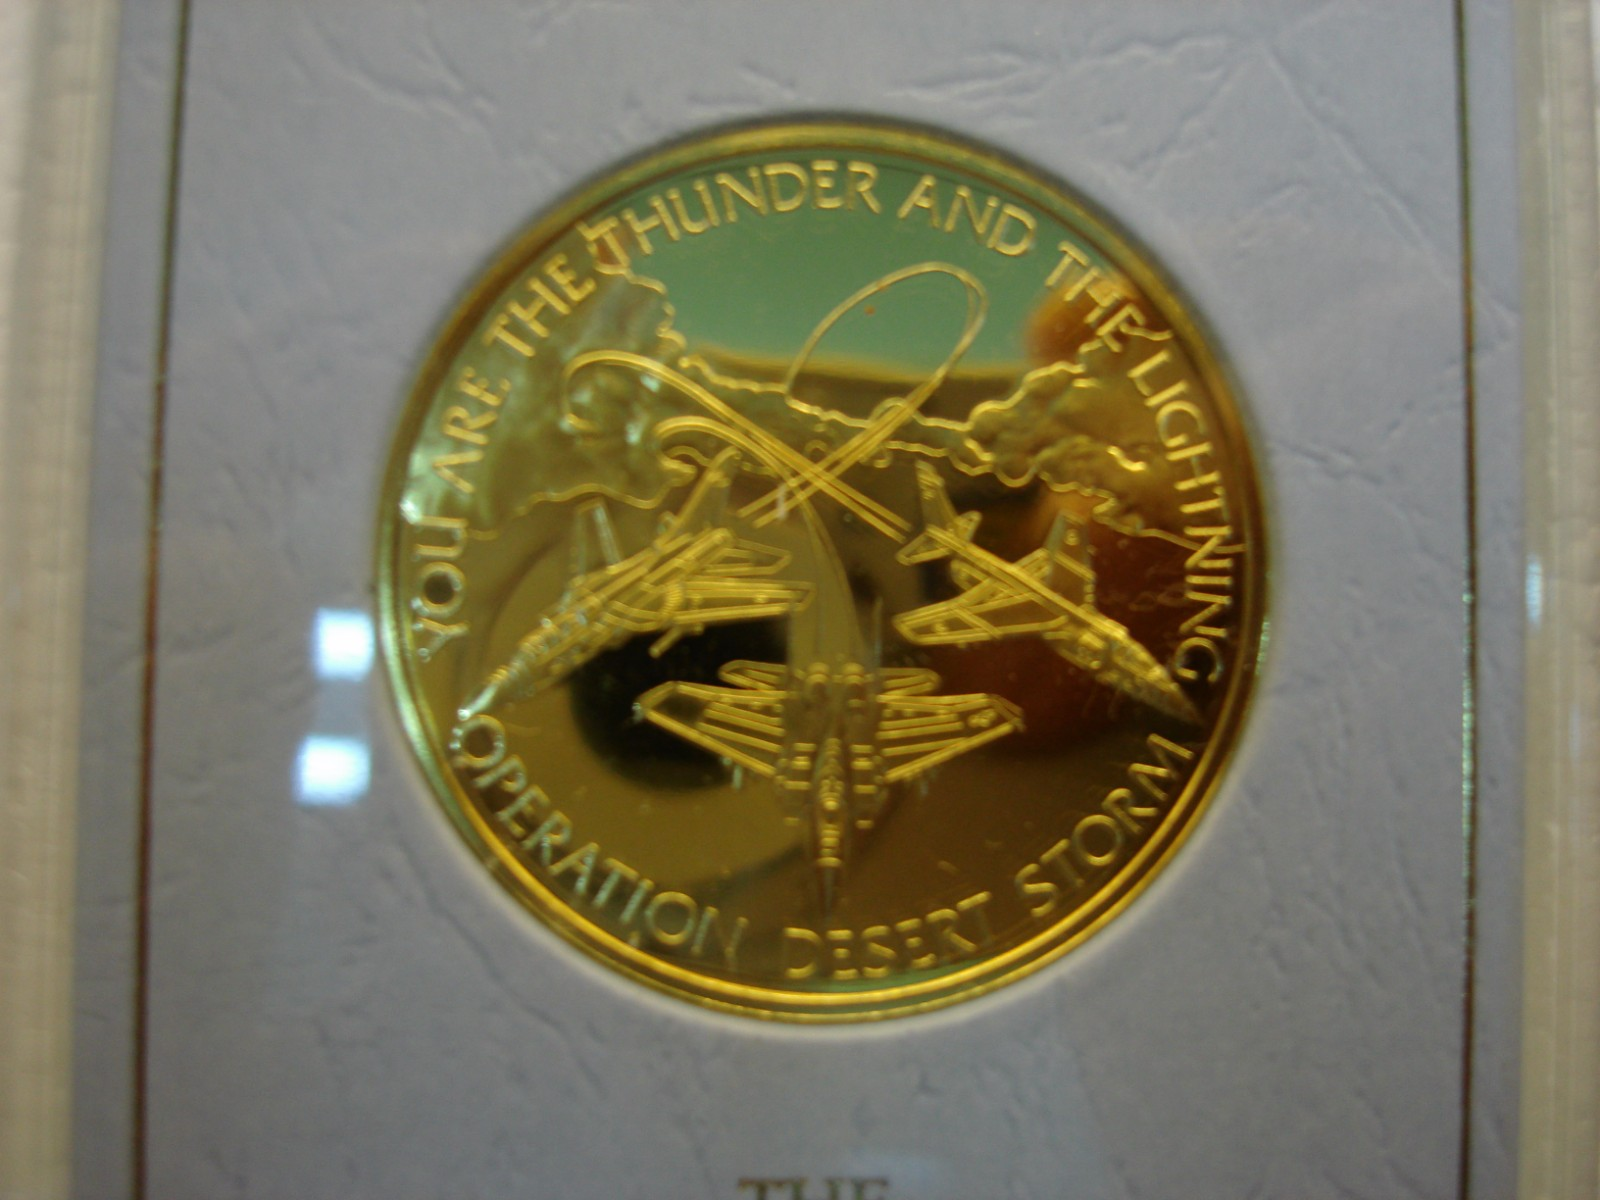 Operation Desert Storm Eyewitness Commemorative Medal